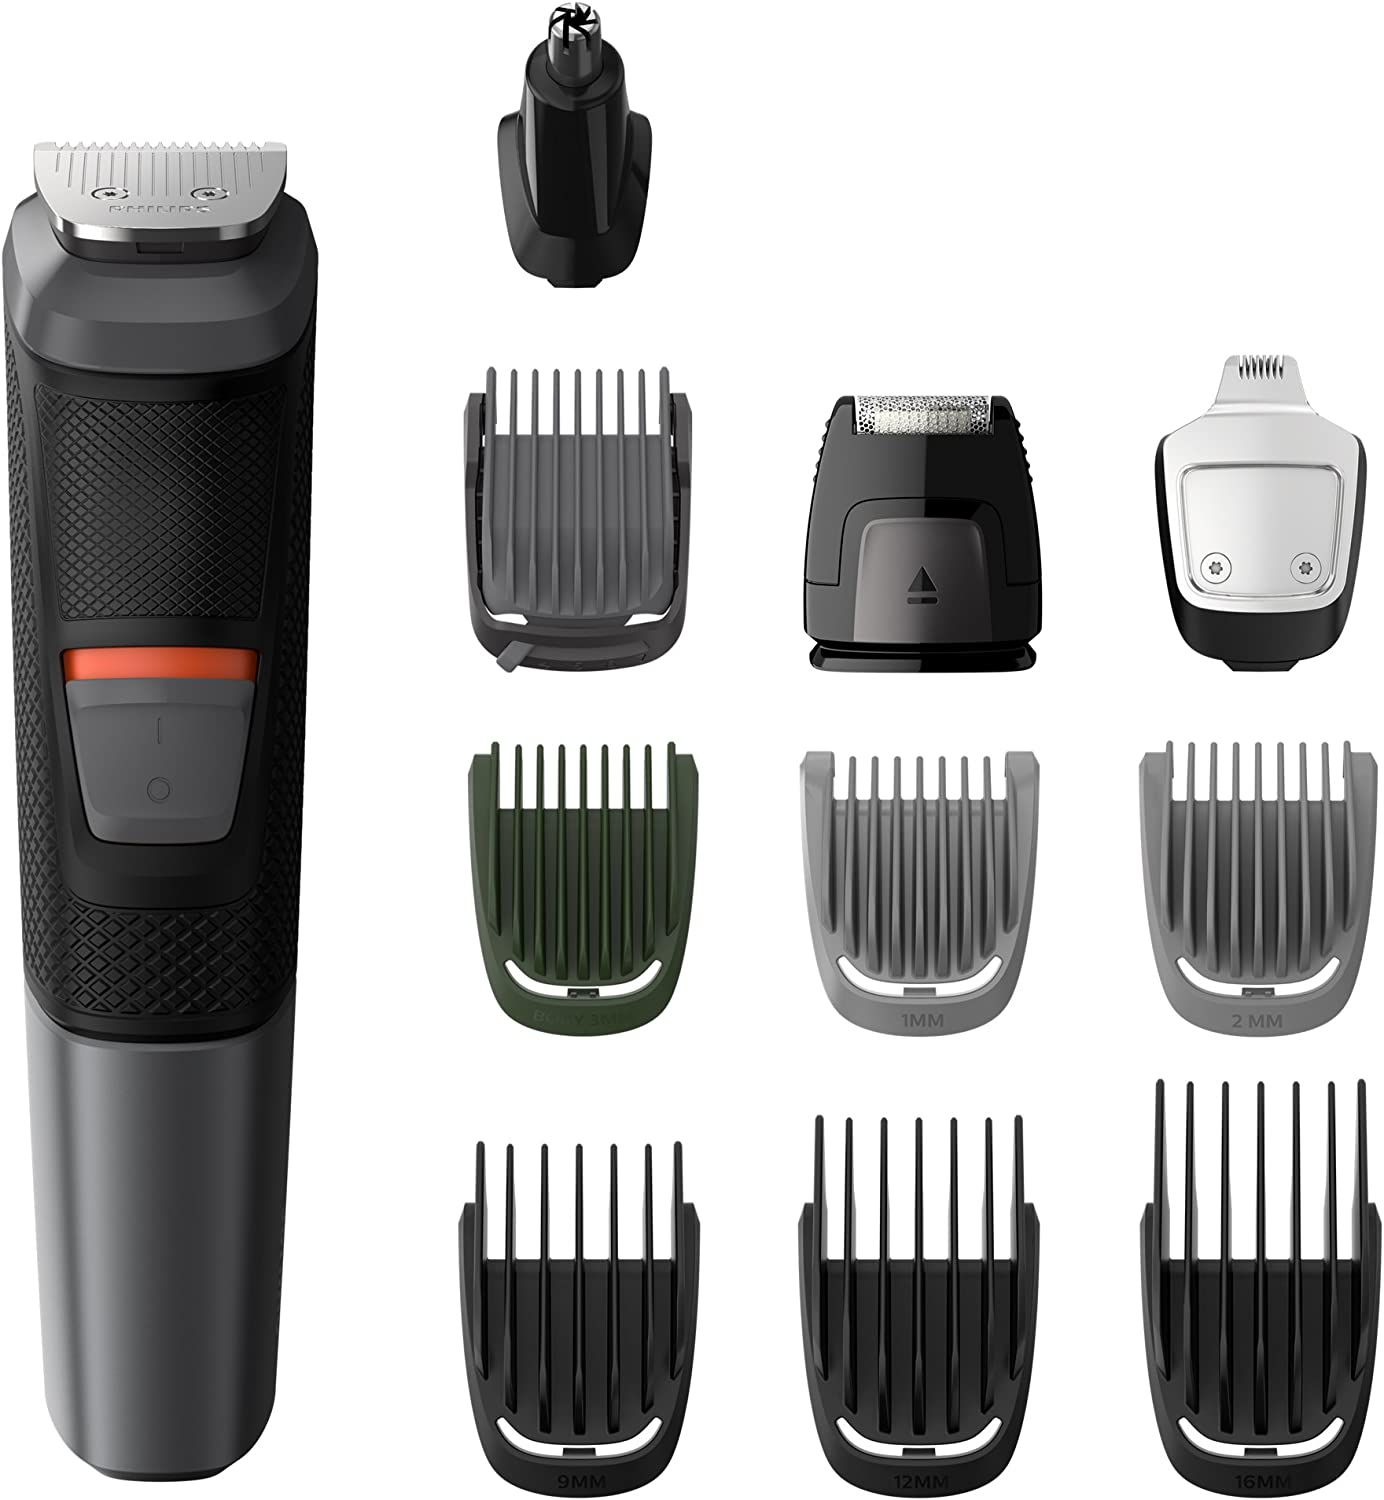 Philips MG5730 groming Kit Serie 5000 recortador impermeable 11 en 1 Barba, Cabello y Cuerpo